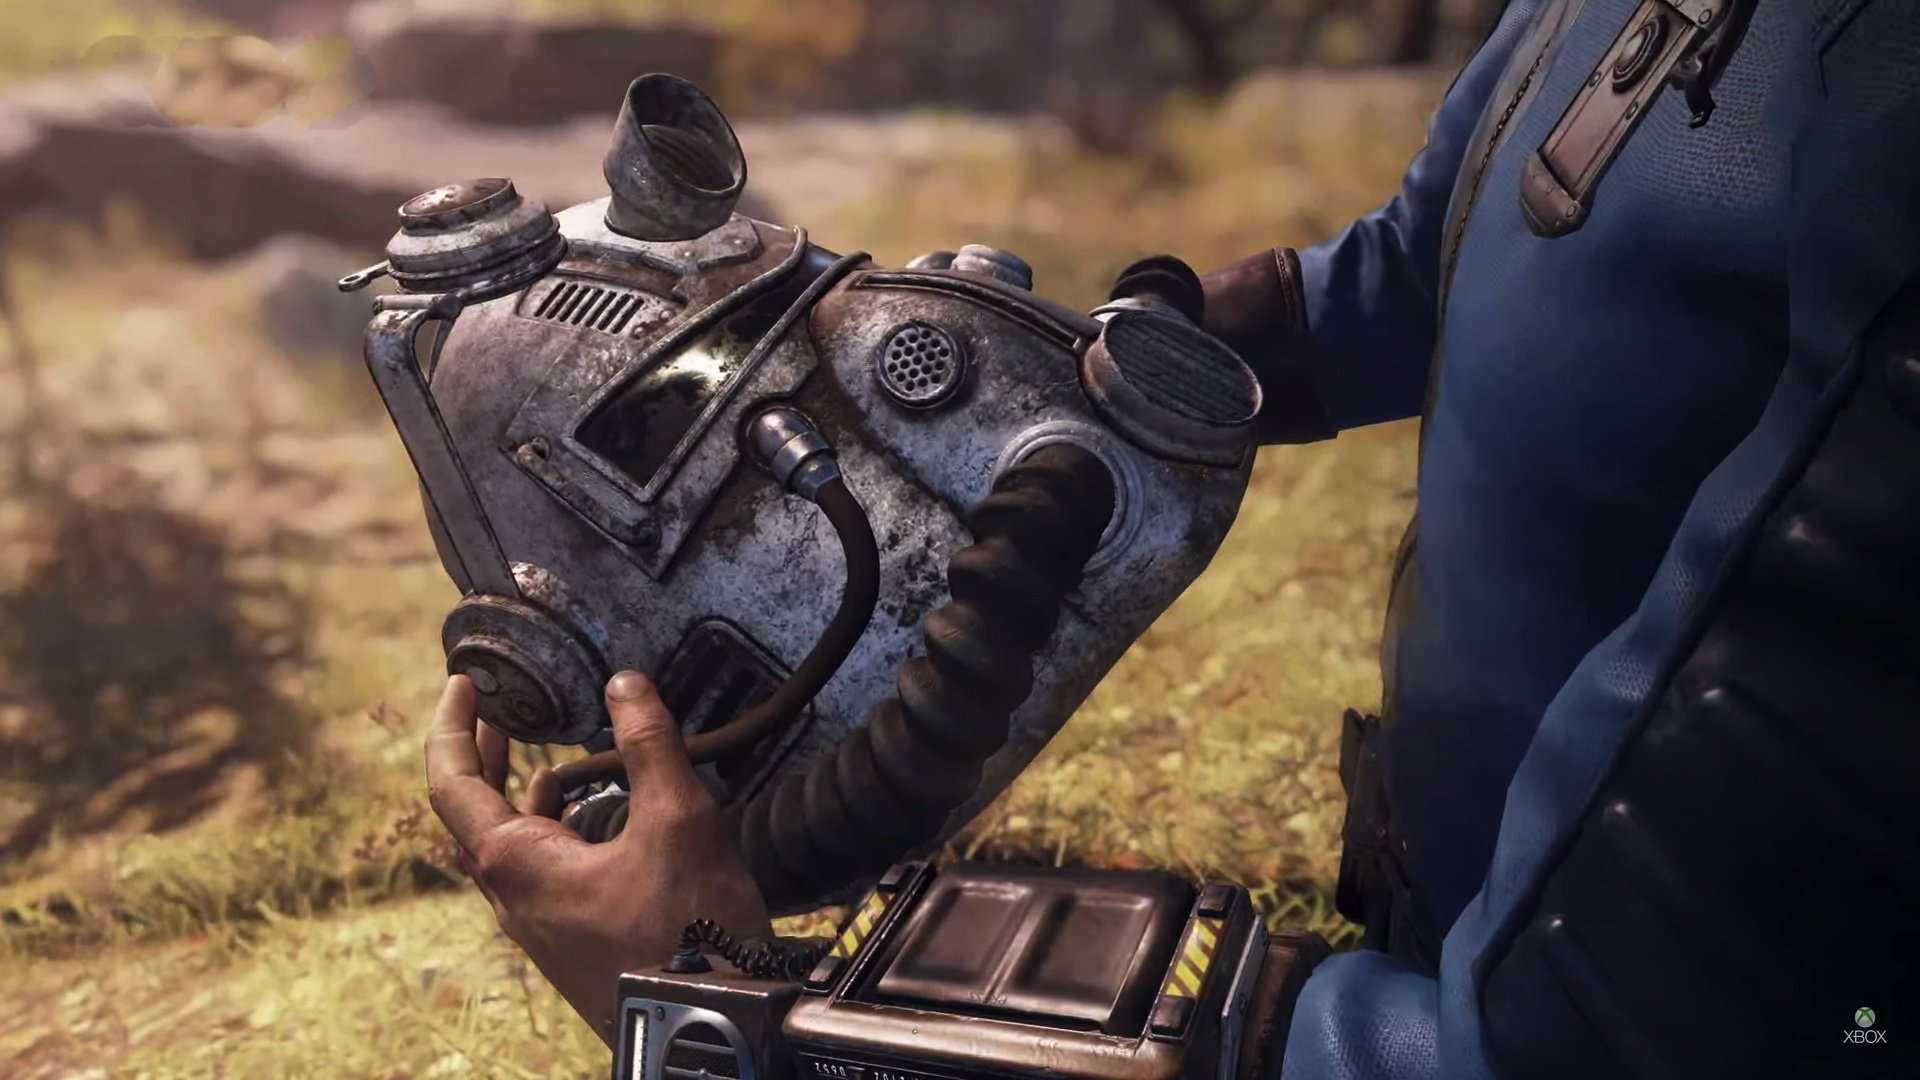 42 Stunning Fallout Props & Toys to 3D Print | All3DP